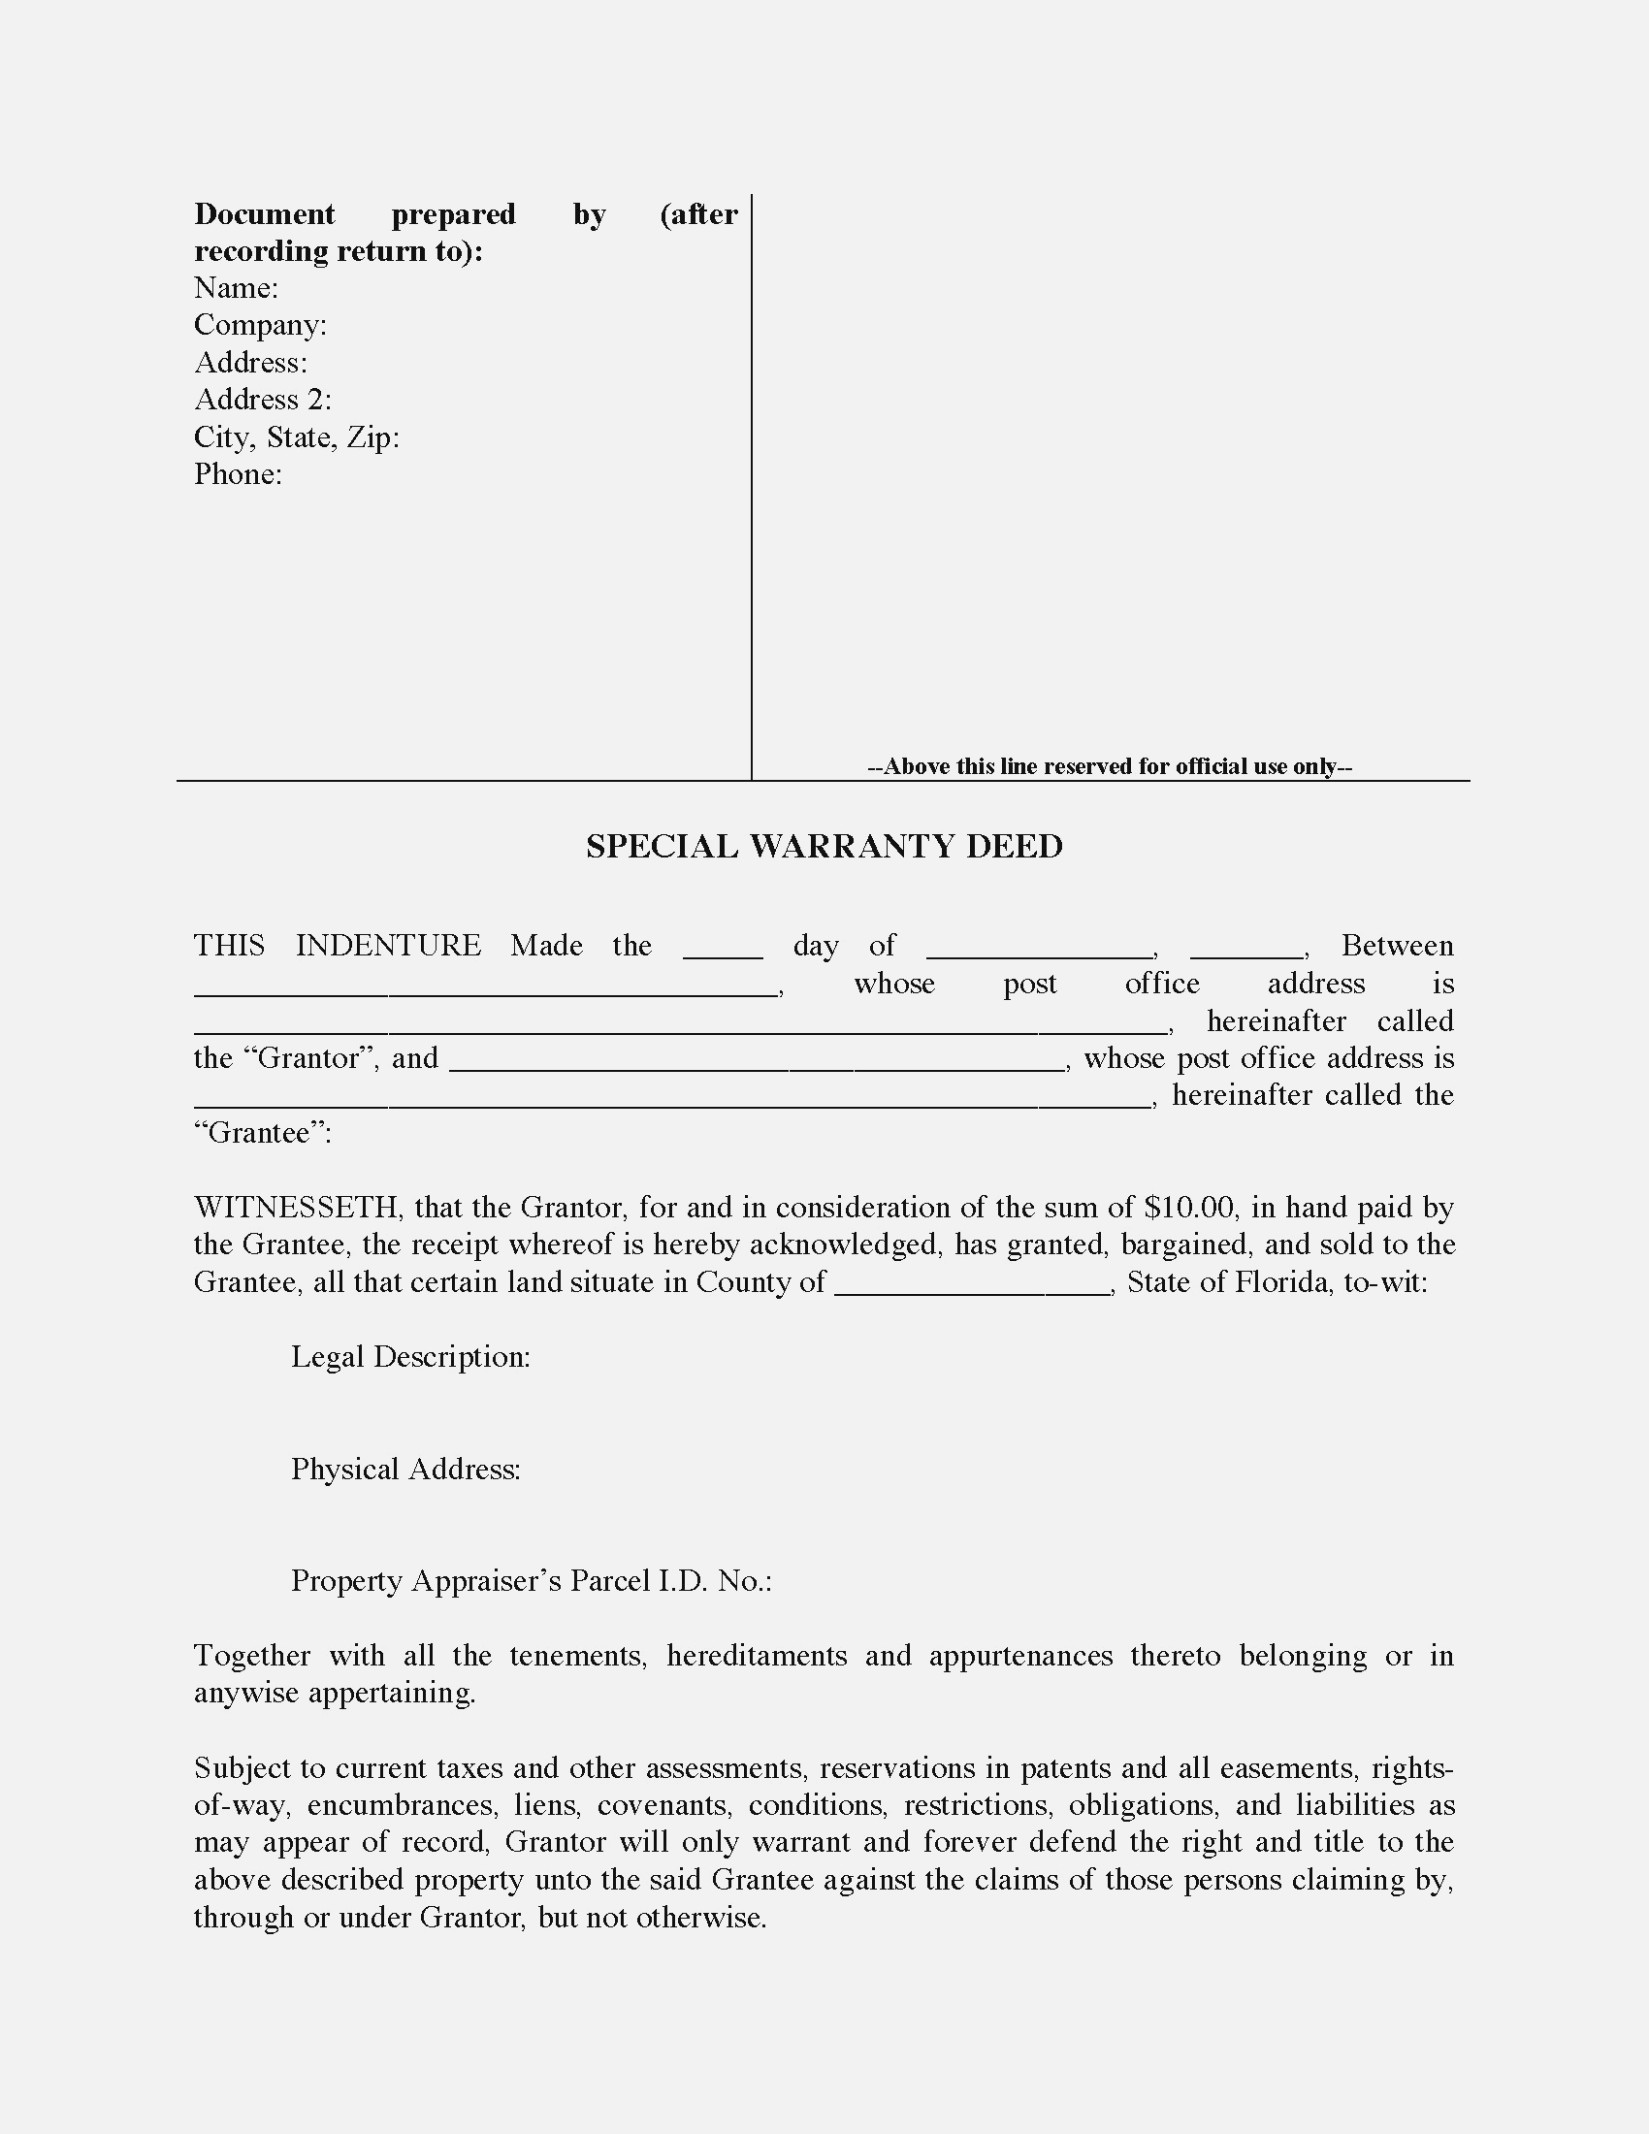 Special Warranty Deed Form Florida